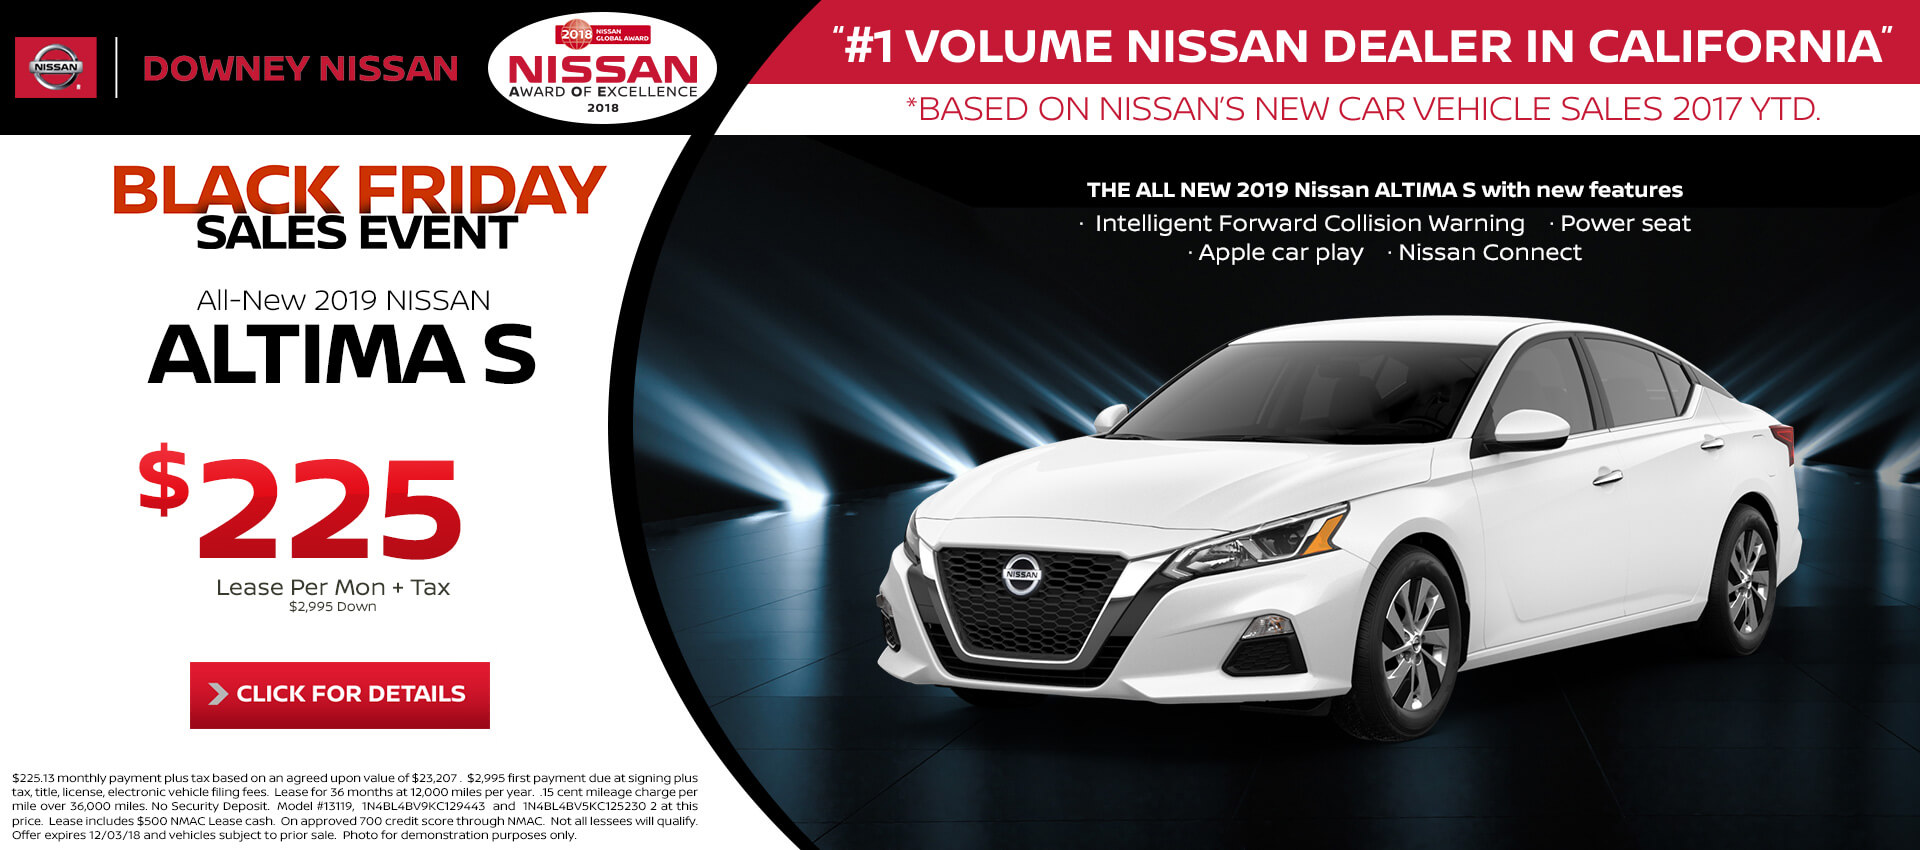 Altima - Lease for $225